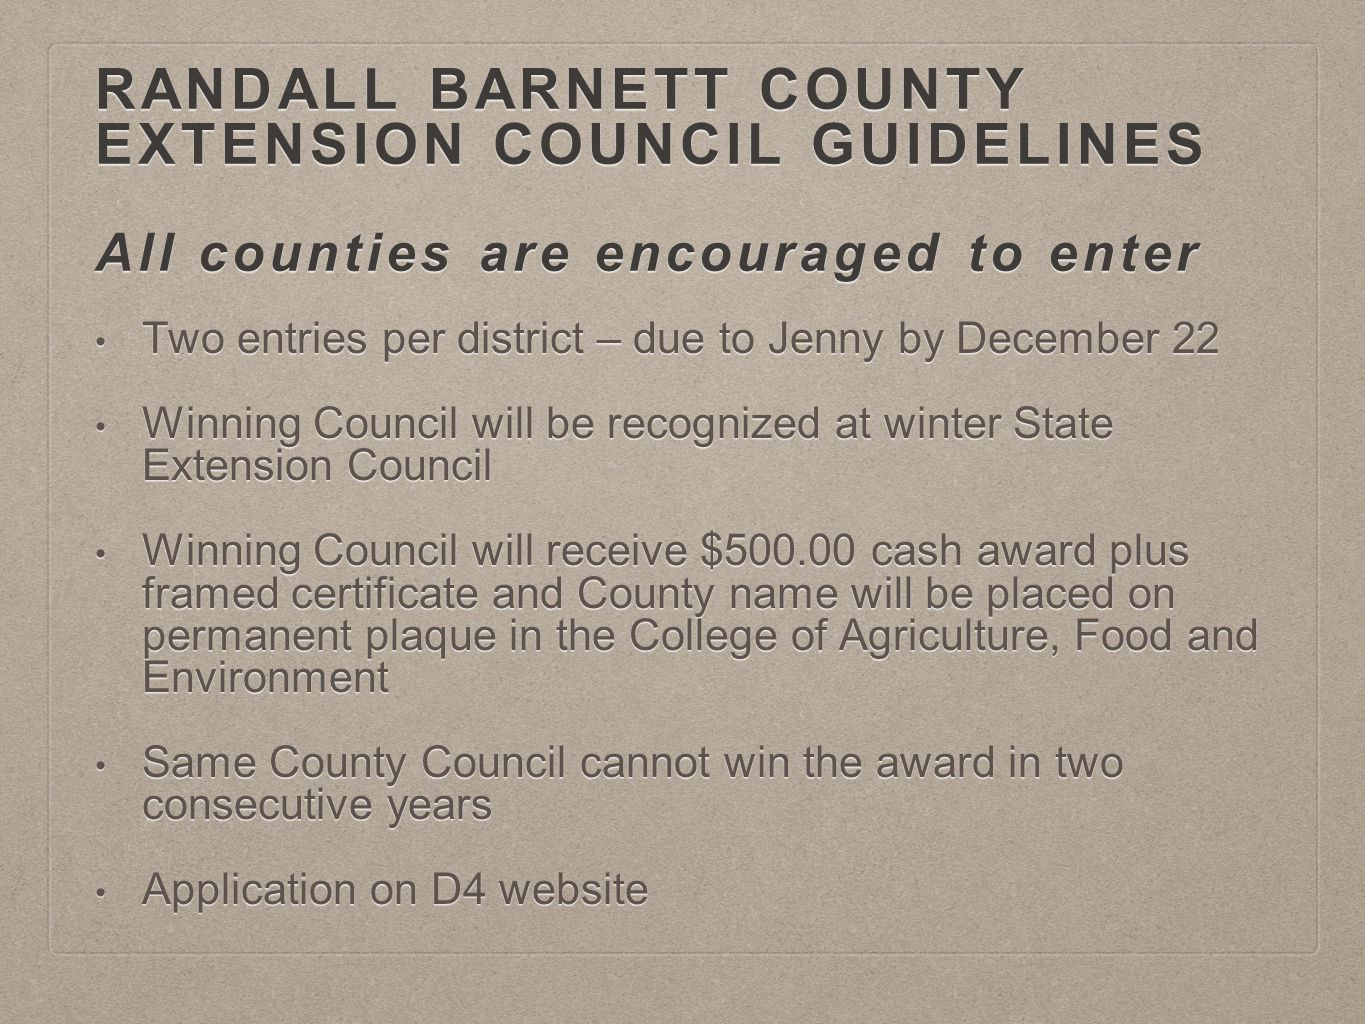 RANDALL BARNETT COUNTY EXTENSION COUNCIL GUIDELINES All counties are encouraged to enter Two entries per district – due to Jenny by December 22 Two entries per district – due to Jenny by December 22 Winning Council will be recognized at winter State Extension Council Winning Council will be recognized at winter State Extension Council Winning Council will receive $500.00 cash award plus framed certificate and County name will be placed on permanent plaque in the College of Agriculture, Food and Environment Winning Council will receive $500.00 cash award plus framed certificate and County name will be placed on permanent plaque in the College of Agriculture, Food and Environment Same County Council cannot win the award in two consecutive years Same County Council cannot win the award in two consecutive years Application on D4 website Application on D4 website